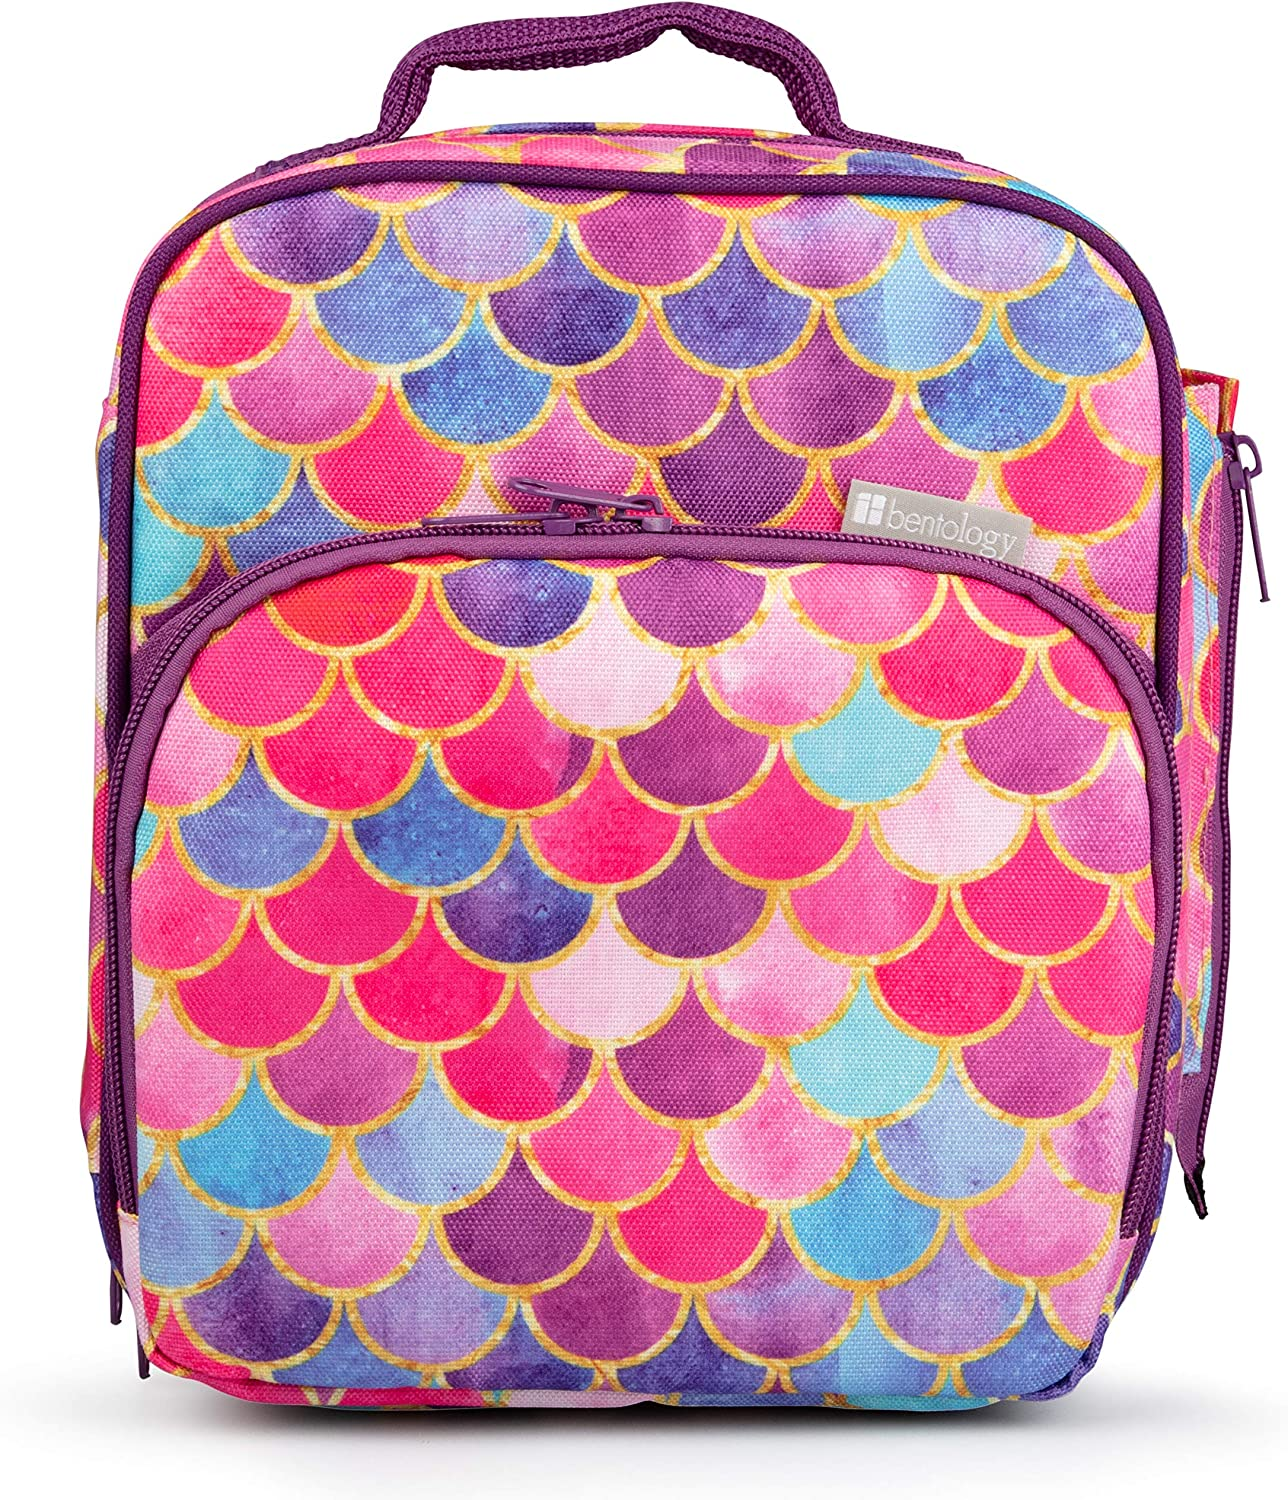 Bentology Lunch Box for Kids - Girls and Boys Insulated Lunchbox Bag Tote - Fits Bento Boxes - Mermaid Tail